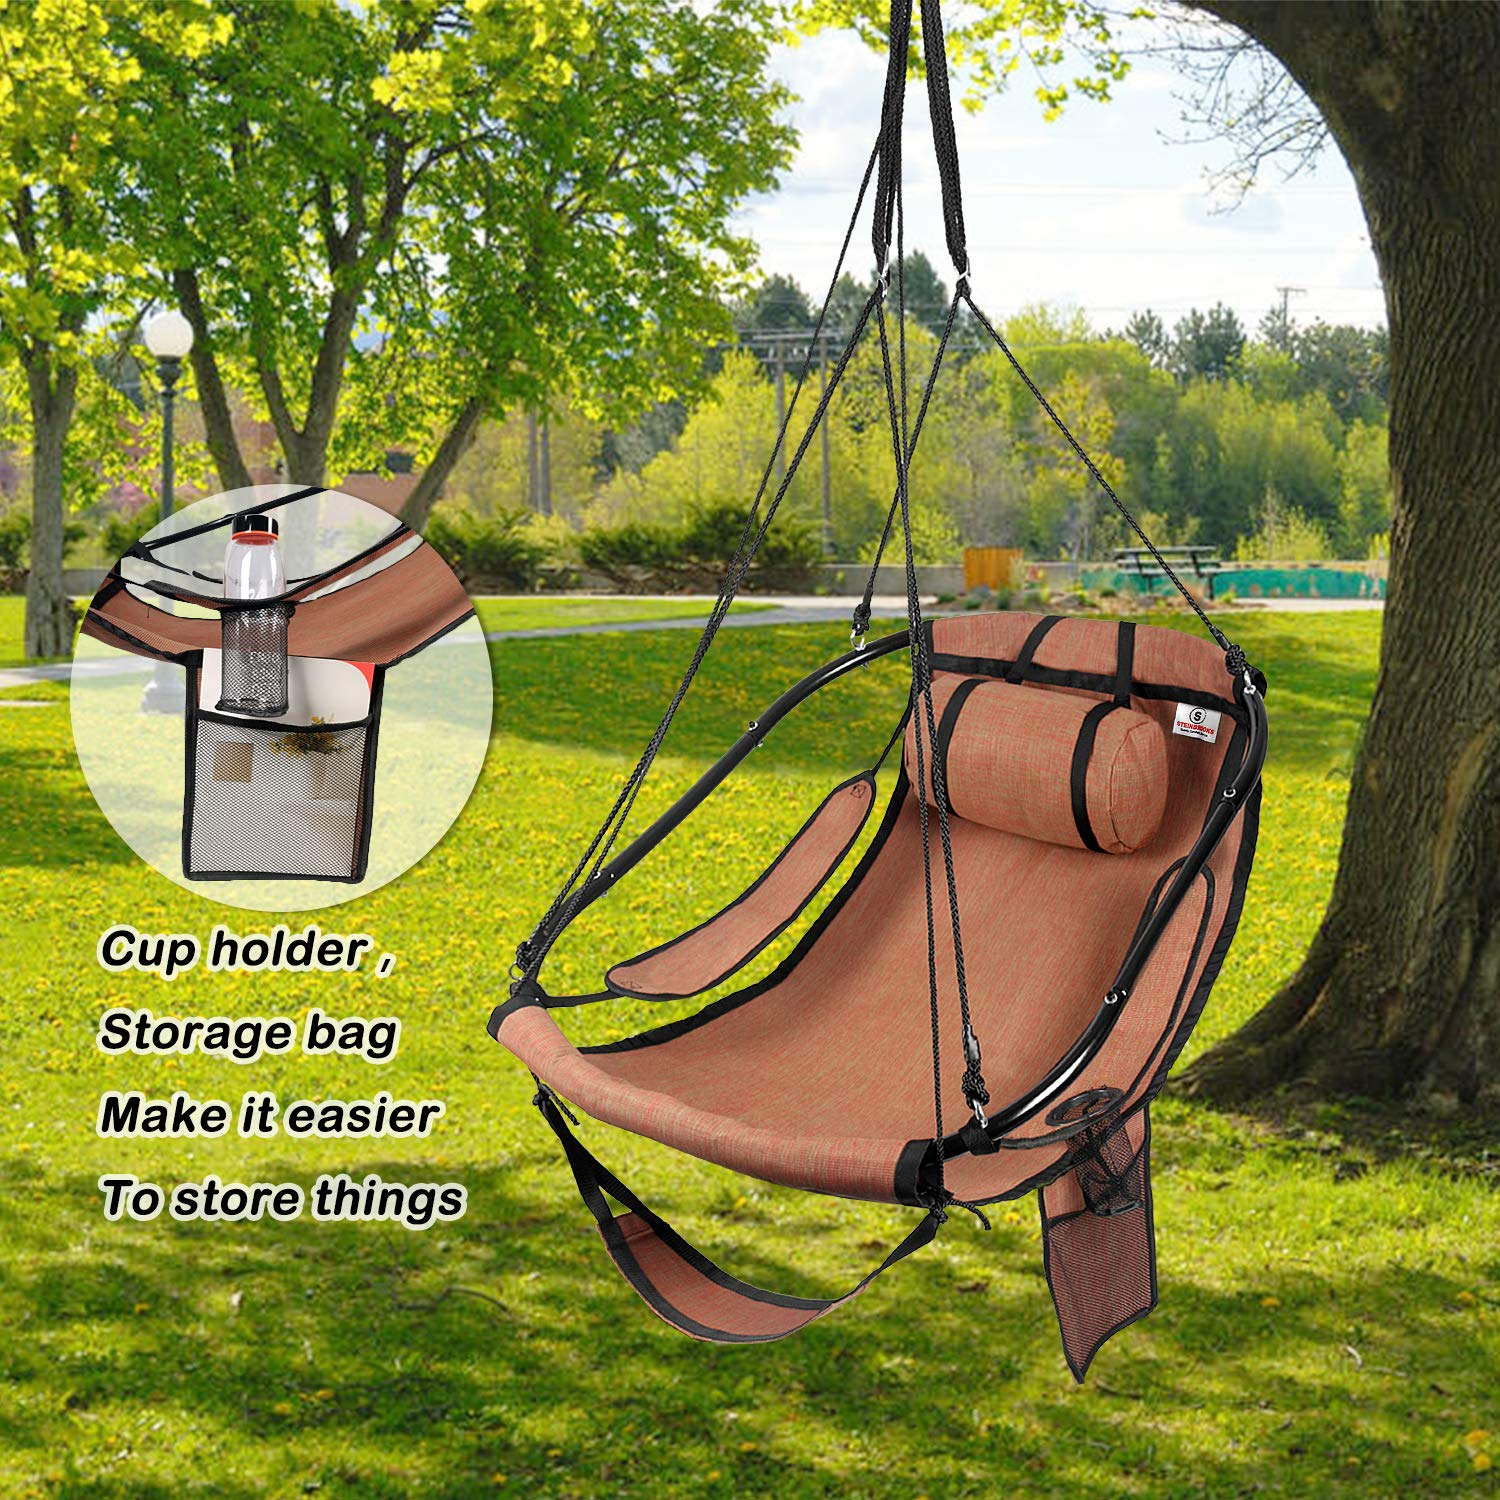 Bathonly 2019 Upgraded Hammock Hanging Chair Air Sky Swing Rope Chair with Plump Pillow Drink Holder Armrest, Foot Rest – Indoor Outdoor 330 Lbs